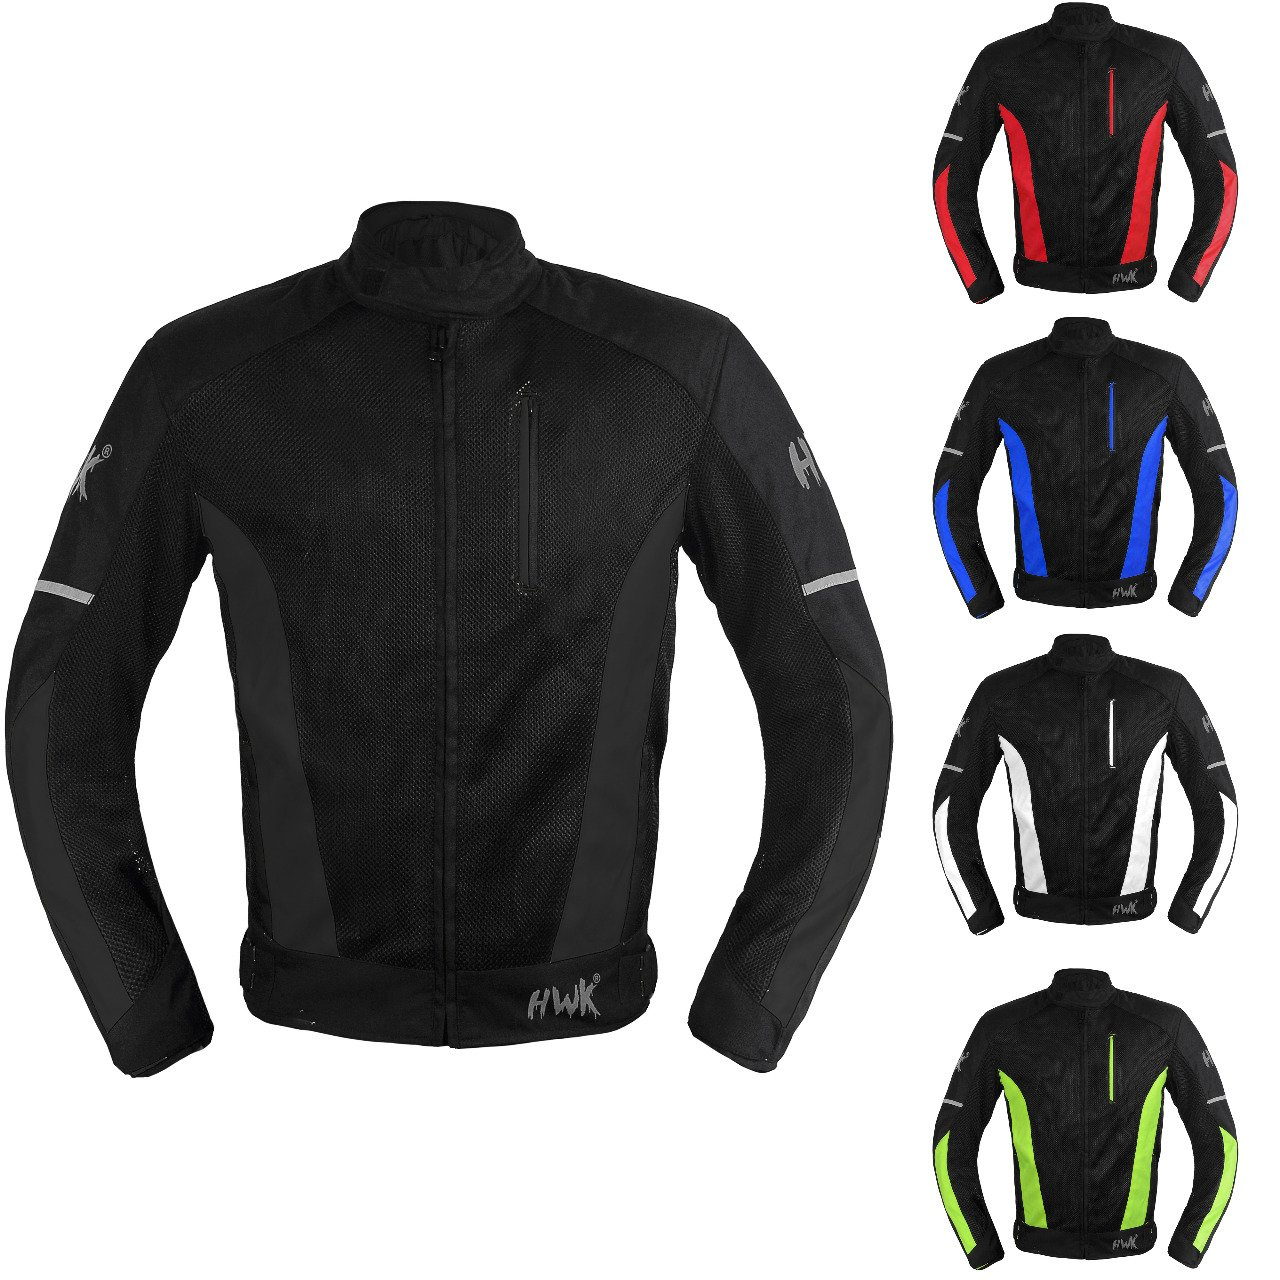 Mesh Motorcycle Jacket Textile Motorbike Summer Biker Air Jacket CE ARMOURED BREATHABLE (Medium, Black)